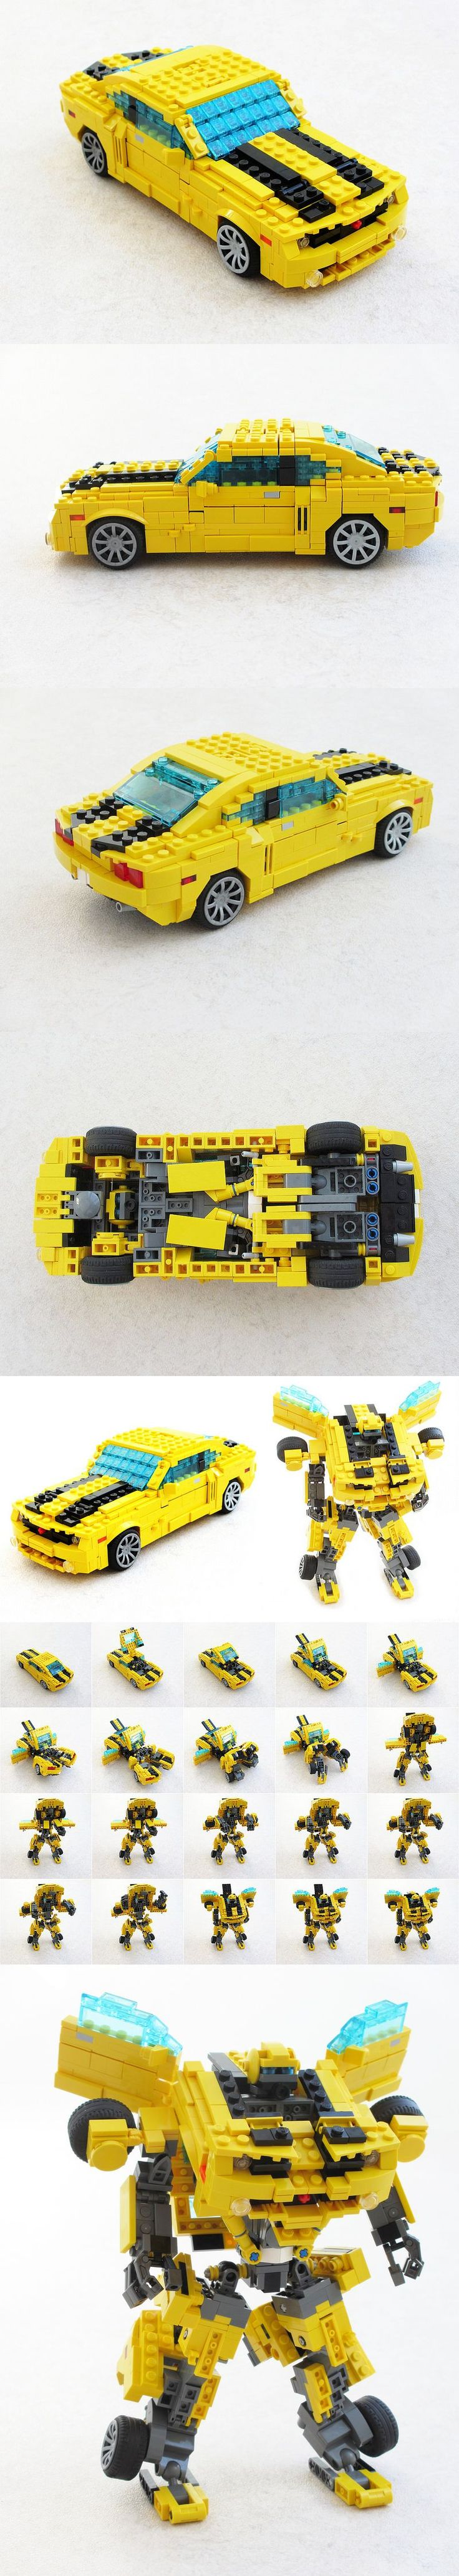 Bumblebee #transformers  Oh my god I must have now!!!!